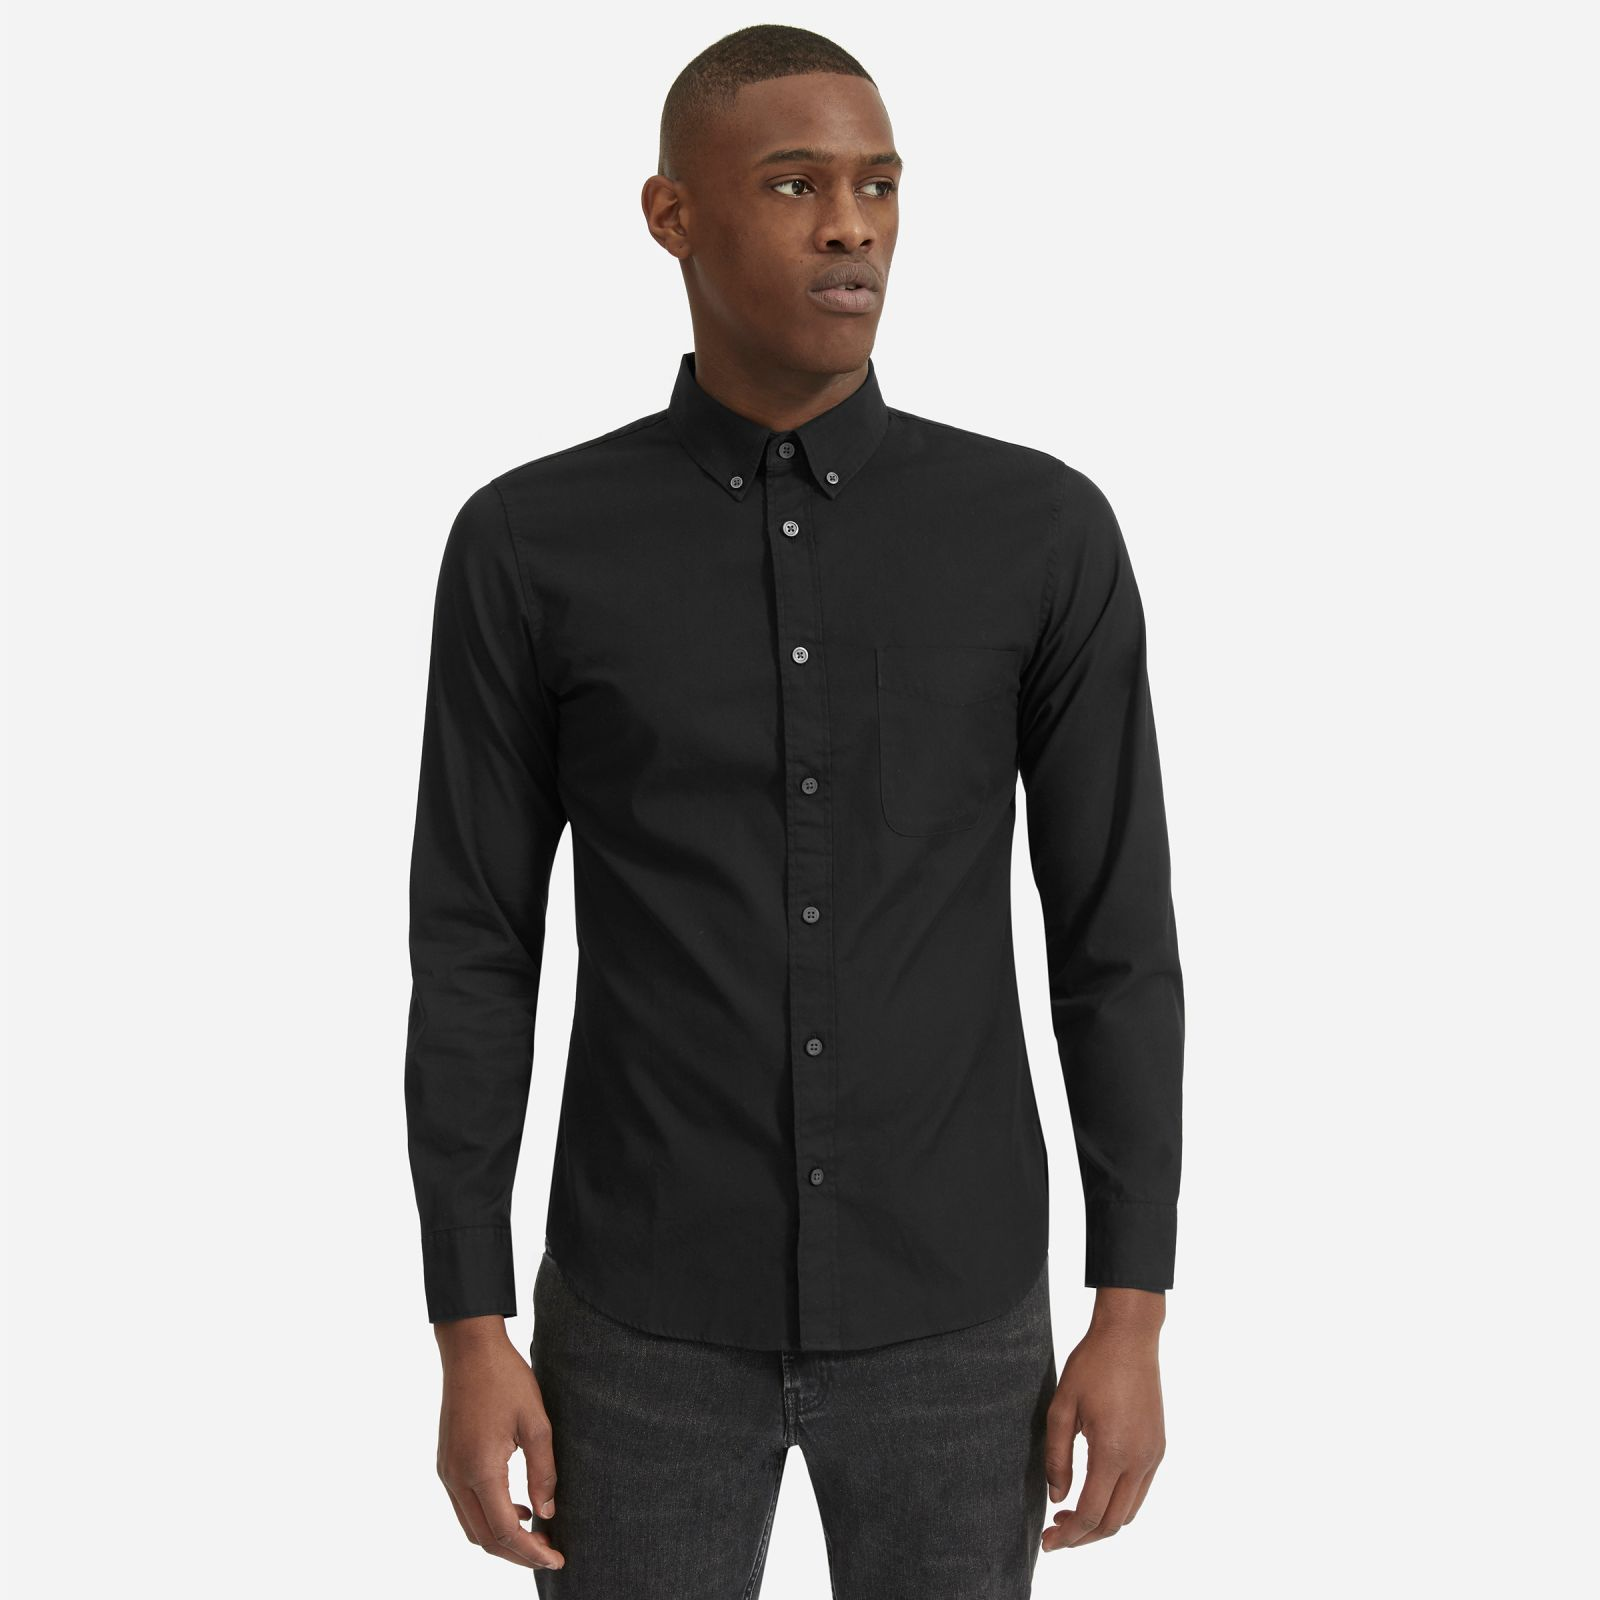 men's air oxford shirt by everlane in black, size l